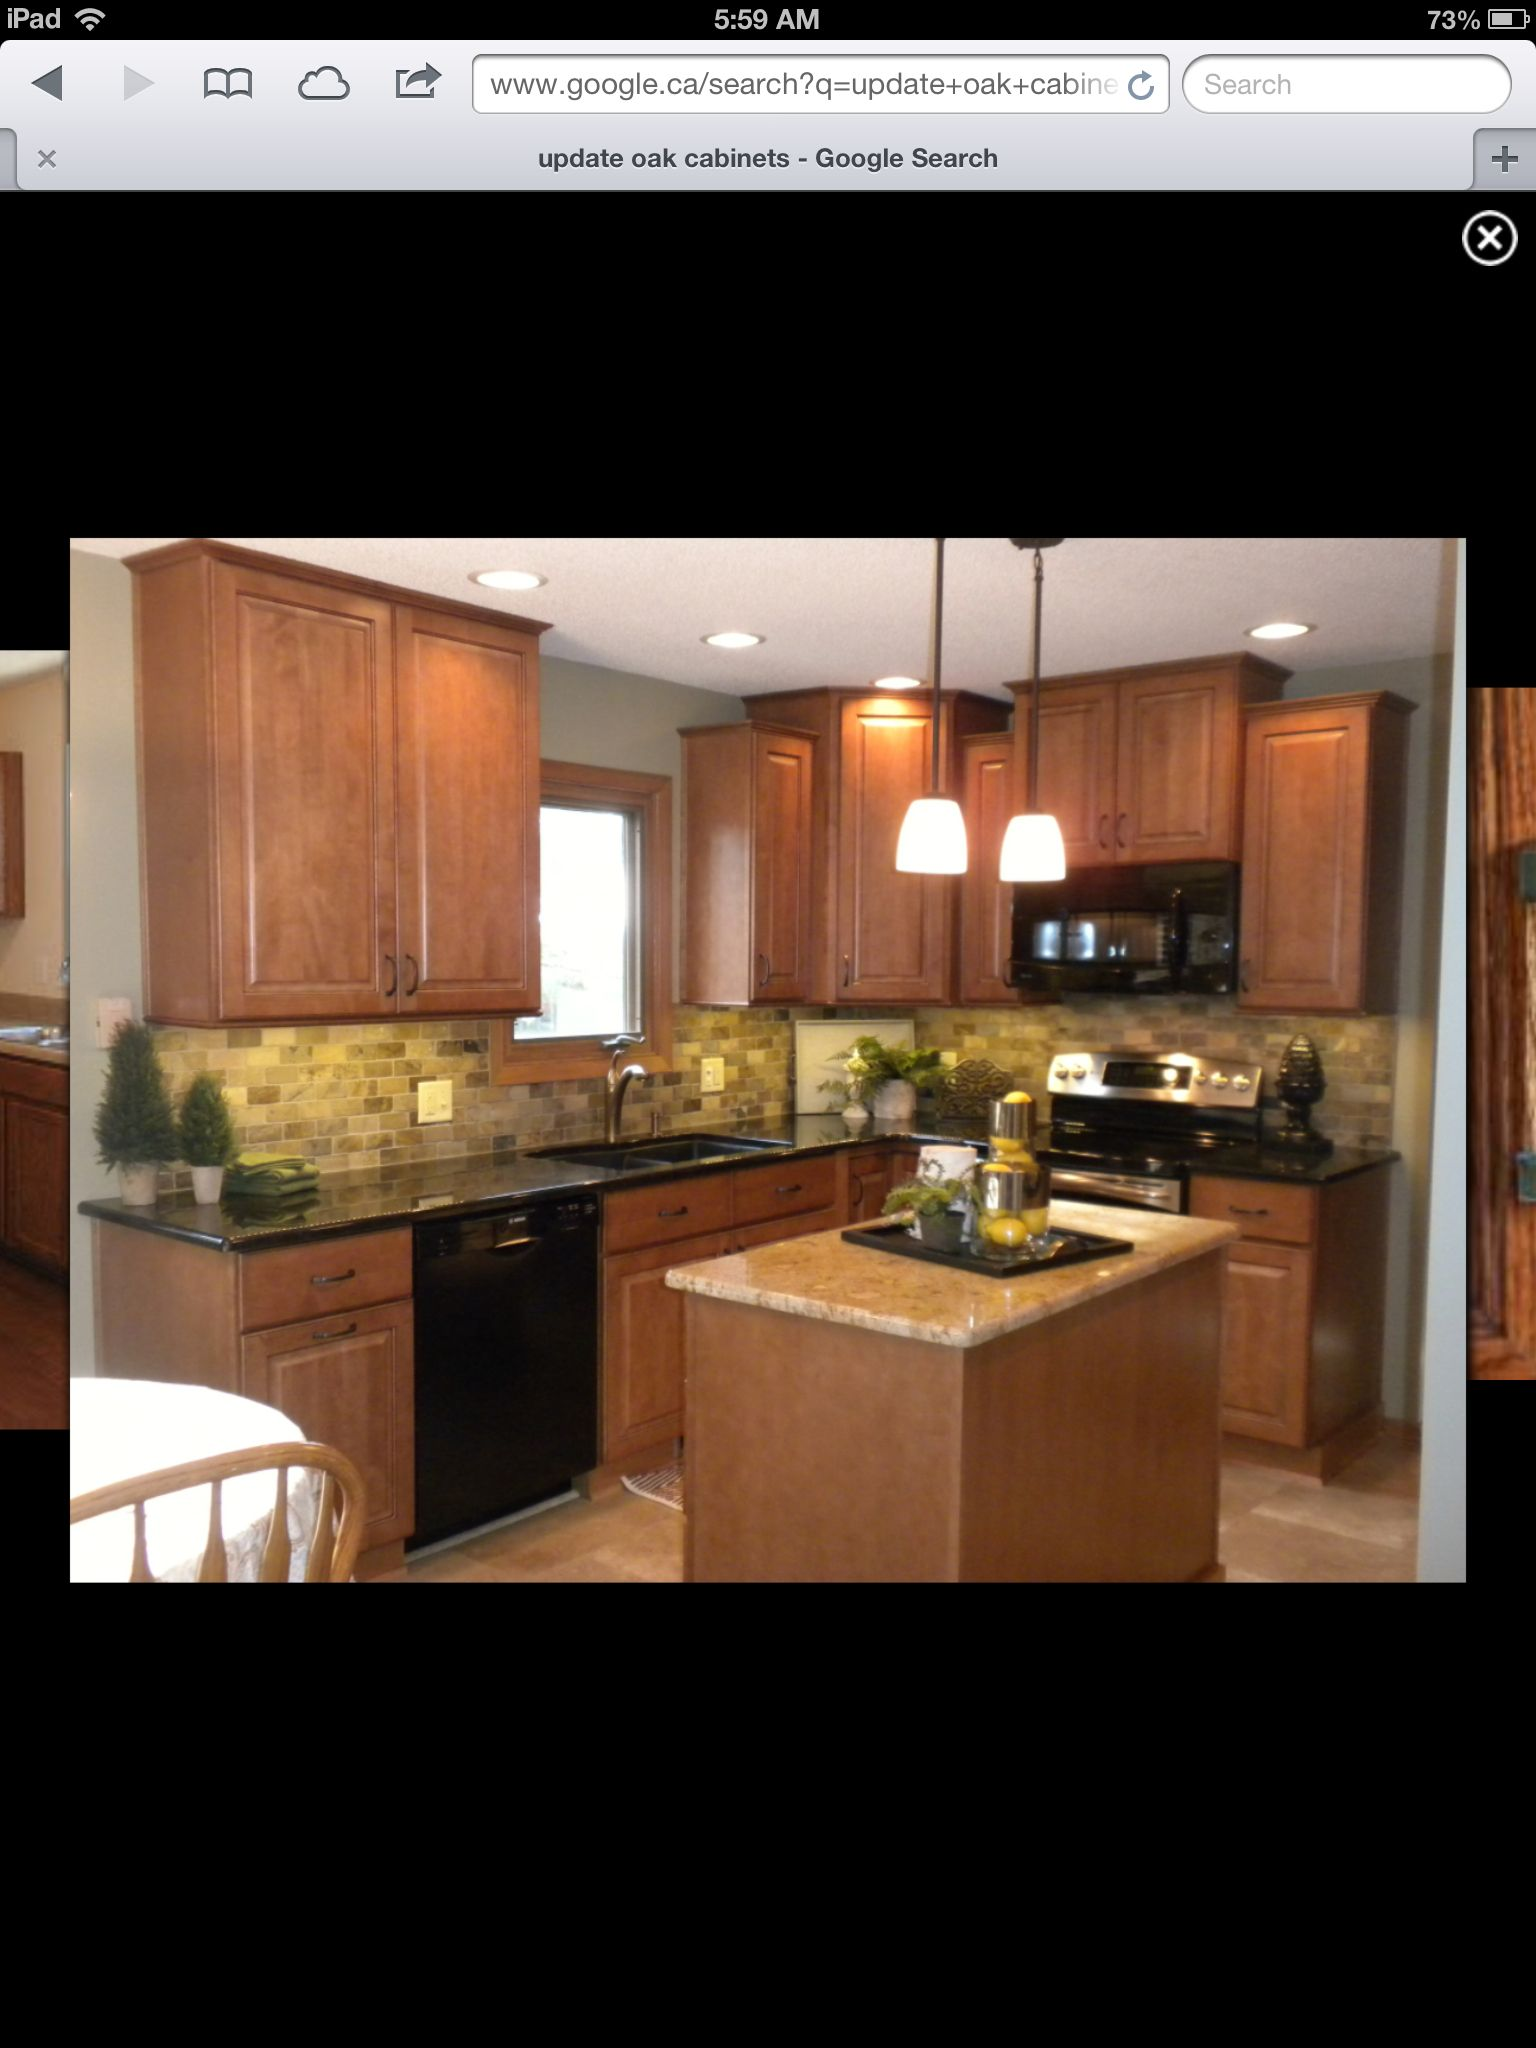 Update Light Oak Cabinets Decorating Pinterest Light